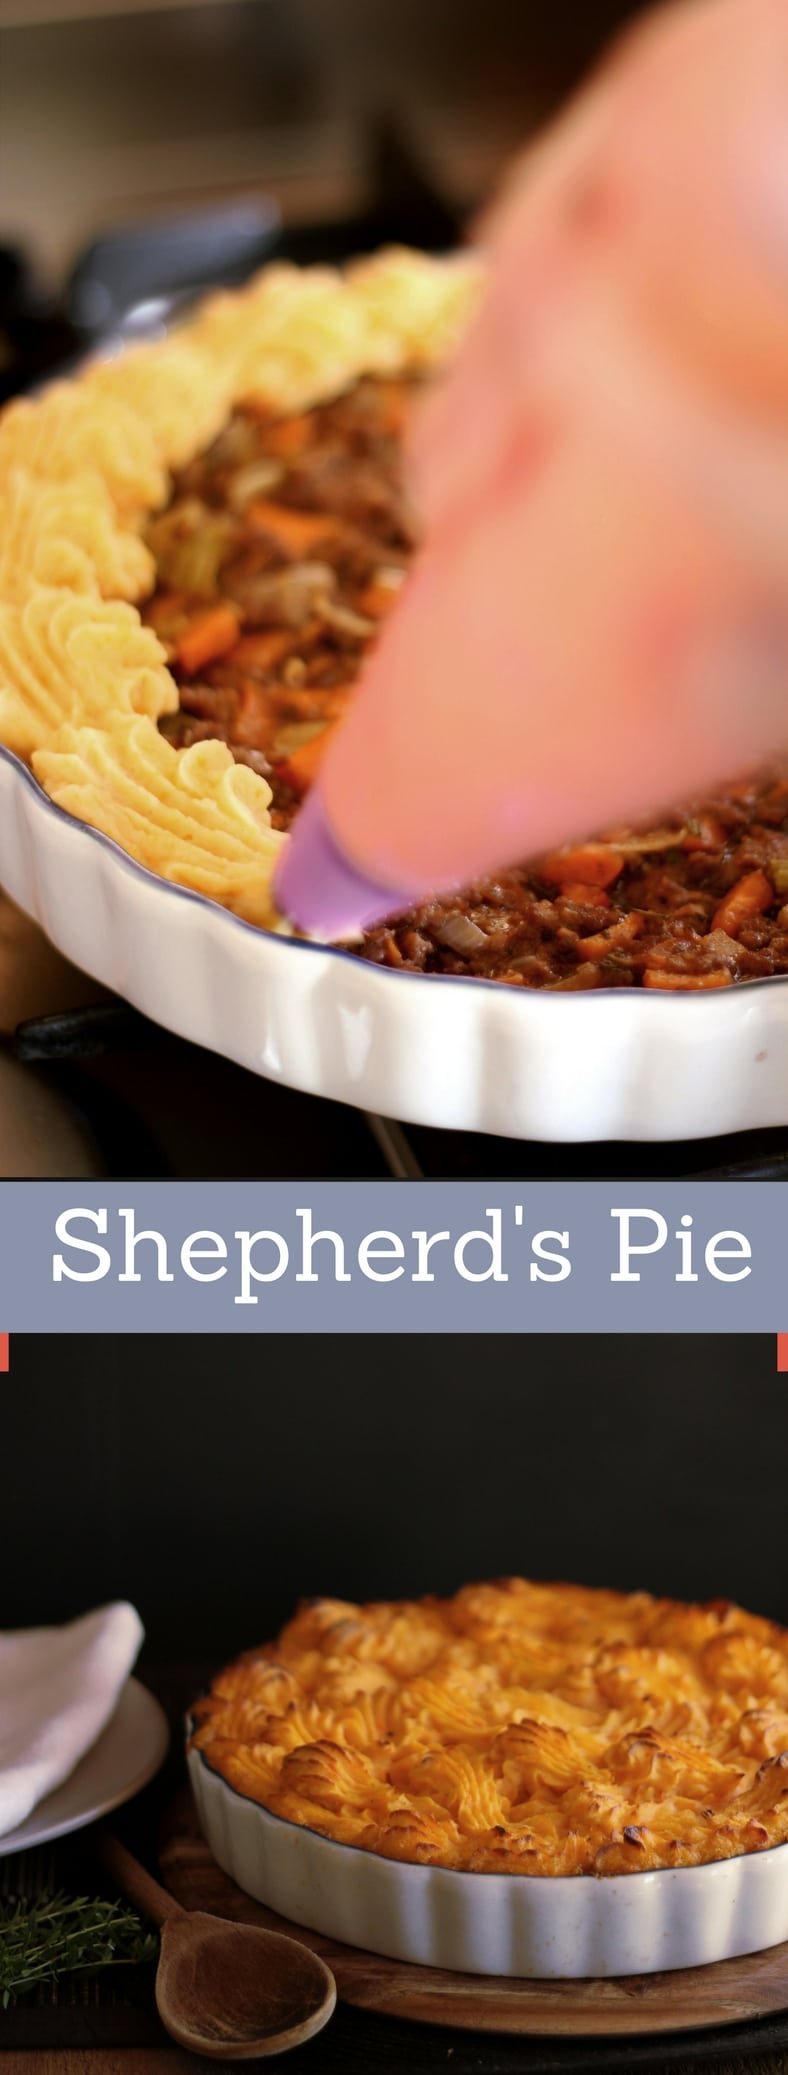 A potato and sweet potato shepherds pie recipe presented int he form of a pin for Pinterest.